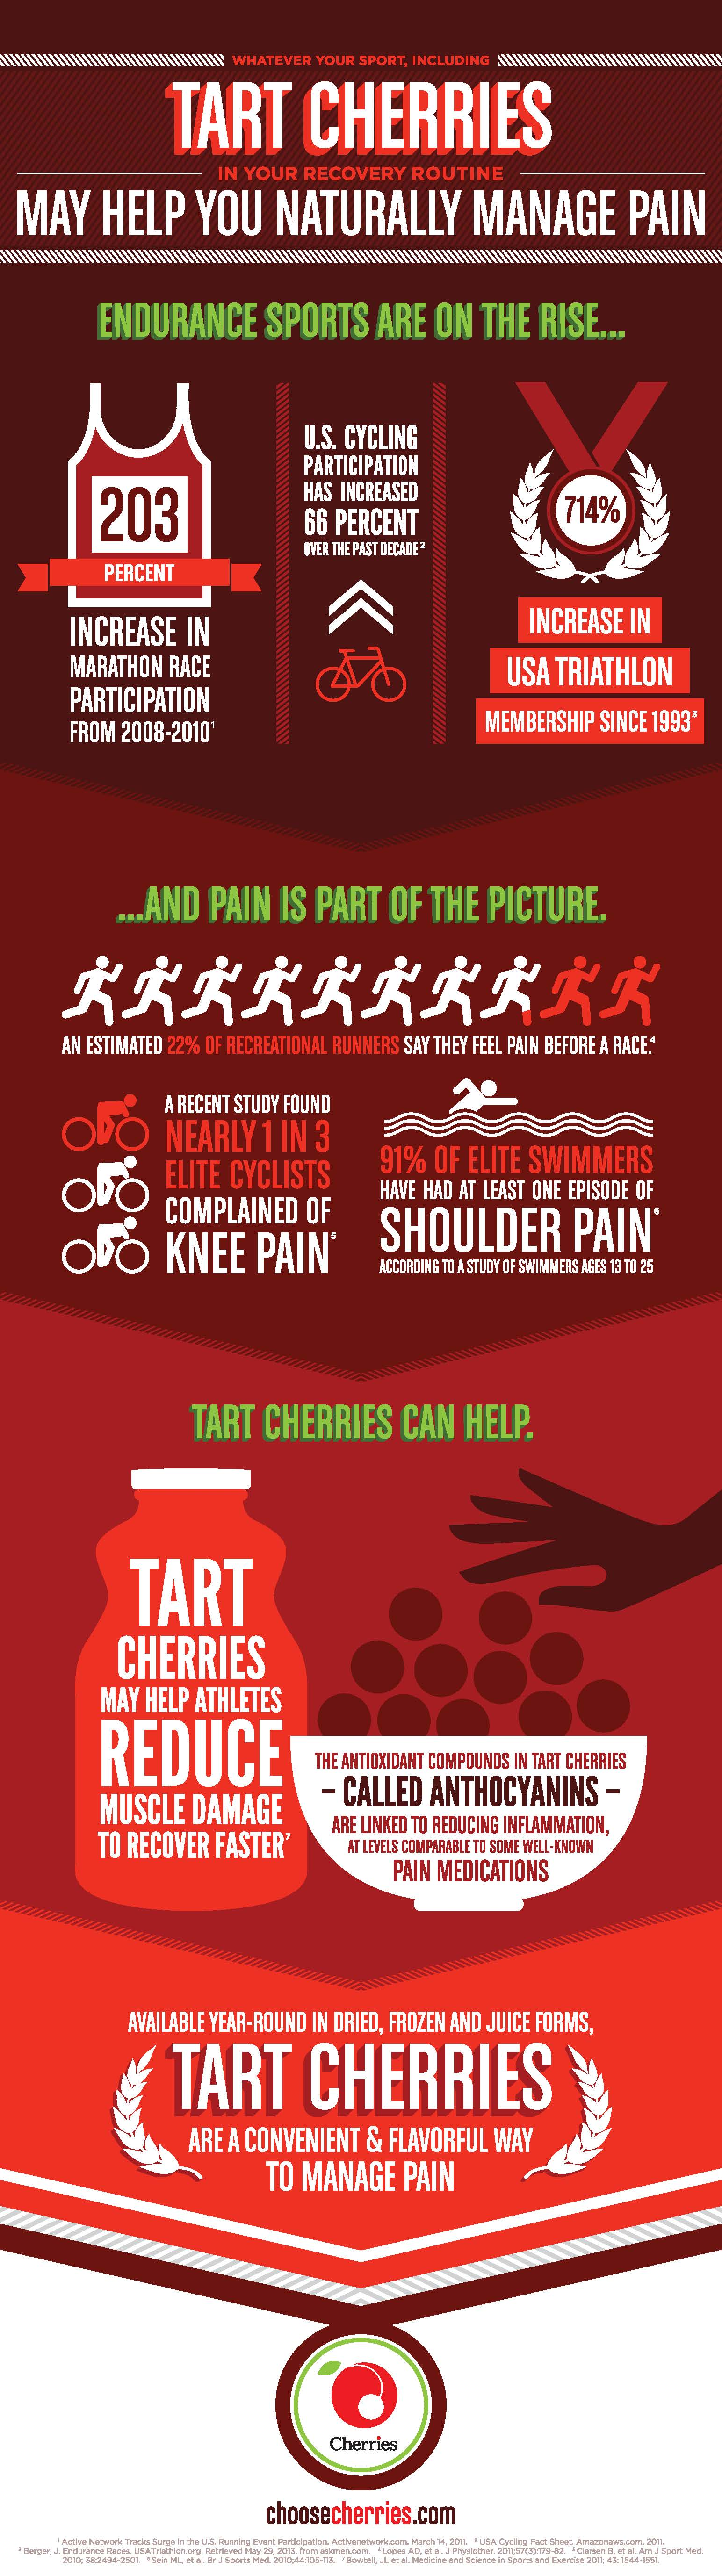 Tart Cherries Help Endurance Athletes Manage Pain